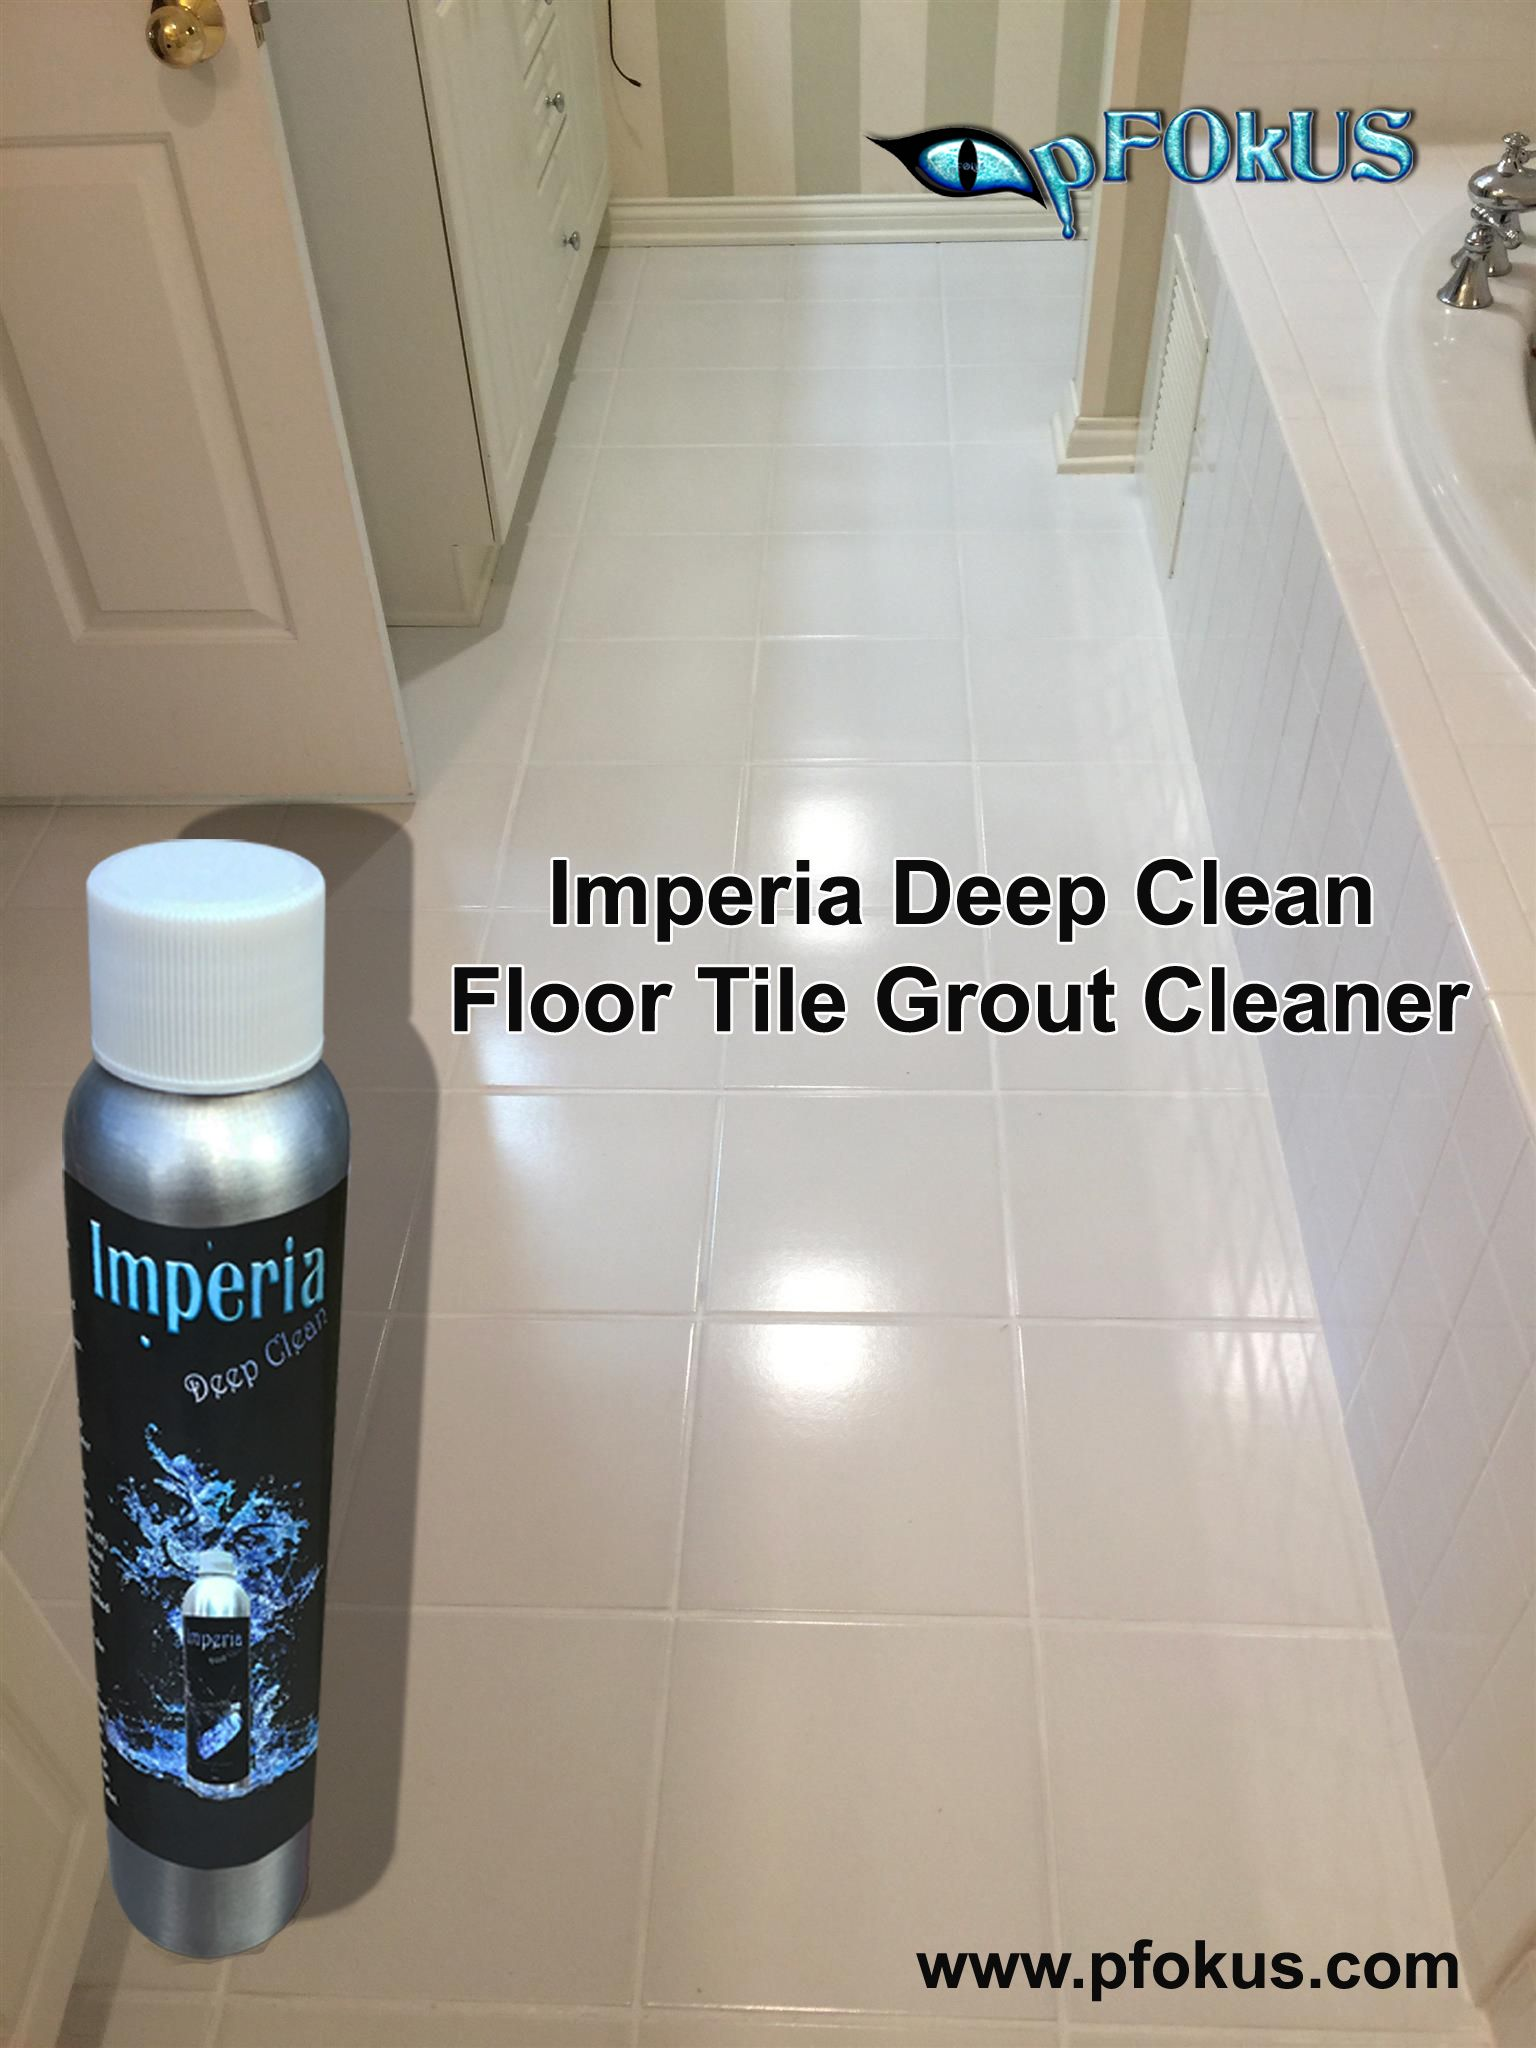 Looking For The Best Floor Tile Grout Cleaner Grab Our Imperia